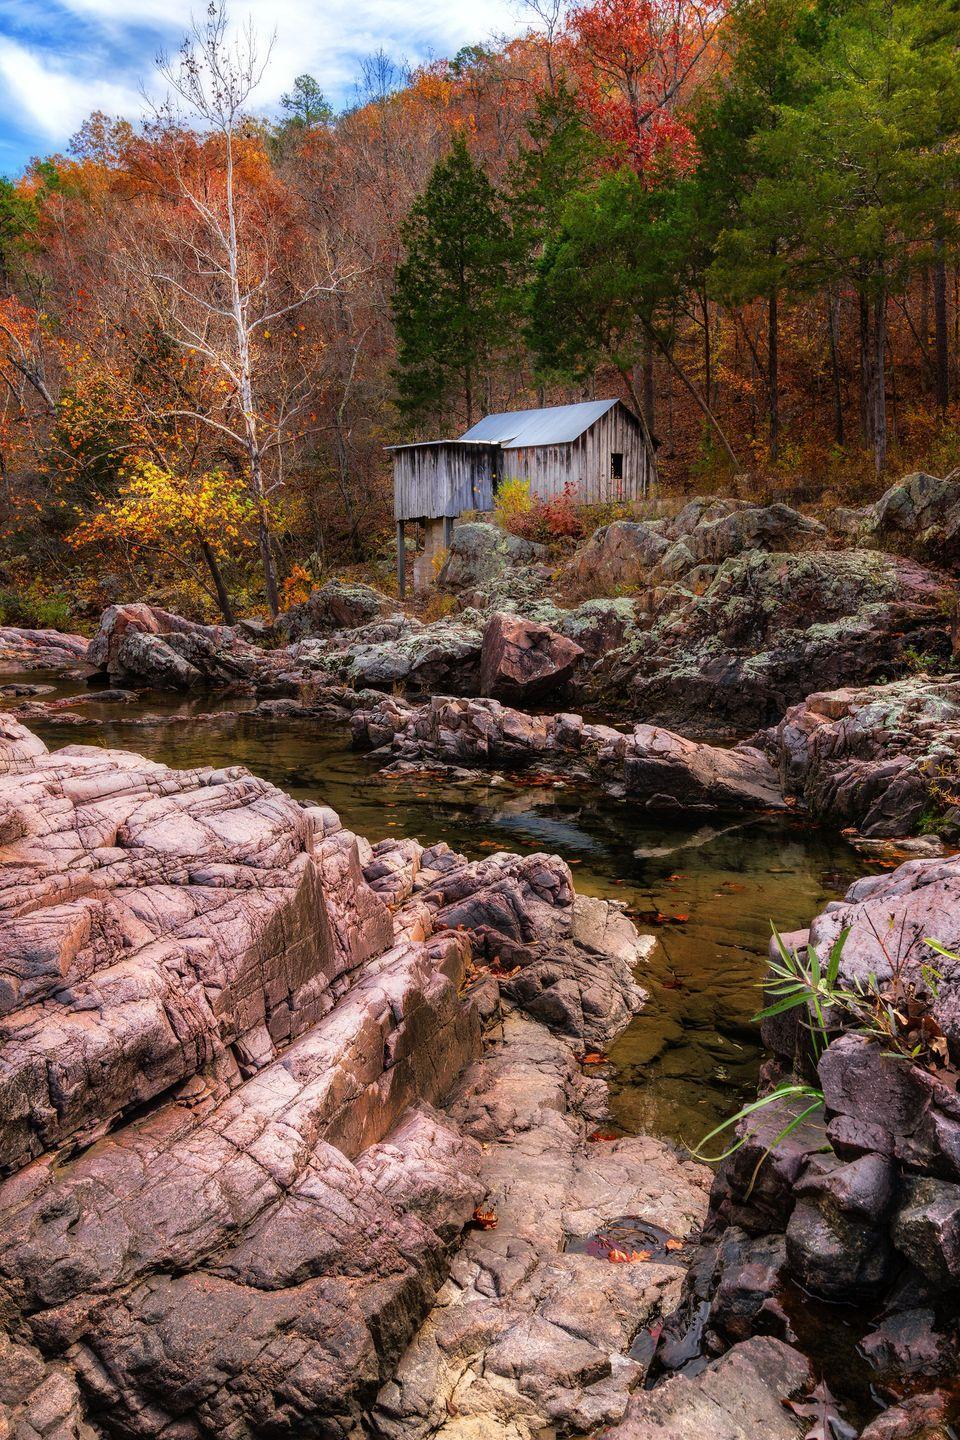 """<p><strong>Where to go:</strong> The Ozark National Scenic Riverways features brilliant fall colors along its creeks, falls, and springs. Check out Klepzing Mill — a 1928 sawmill house — and other local treasures. </p><p><strong>When to go: </strong>Mid-October</p><p><a class=""""link rapid-noclick-resp"""" href=""""https://go.redirectingat.com?id=74968X1596630&url=https%3A%2F%2Fwww.tripadvisor.com%2FHotels-g44758-Ozark_Missouri-Hotels.html&sref=https%3A%2F%2Fwww.redbookmag.com%2Flife%2Fg34045856%2Ffall-colors%2F"""" rel=""""nofollow noopener"""" target=""""_blank"""" data-ylk=""""slk:FIND A HOTEL"""">FIND A HOTEL</a></p>"""